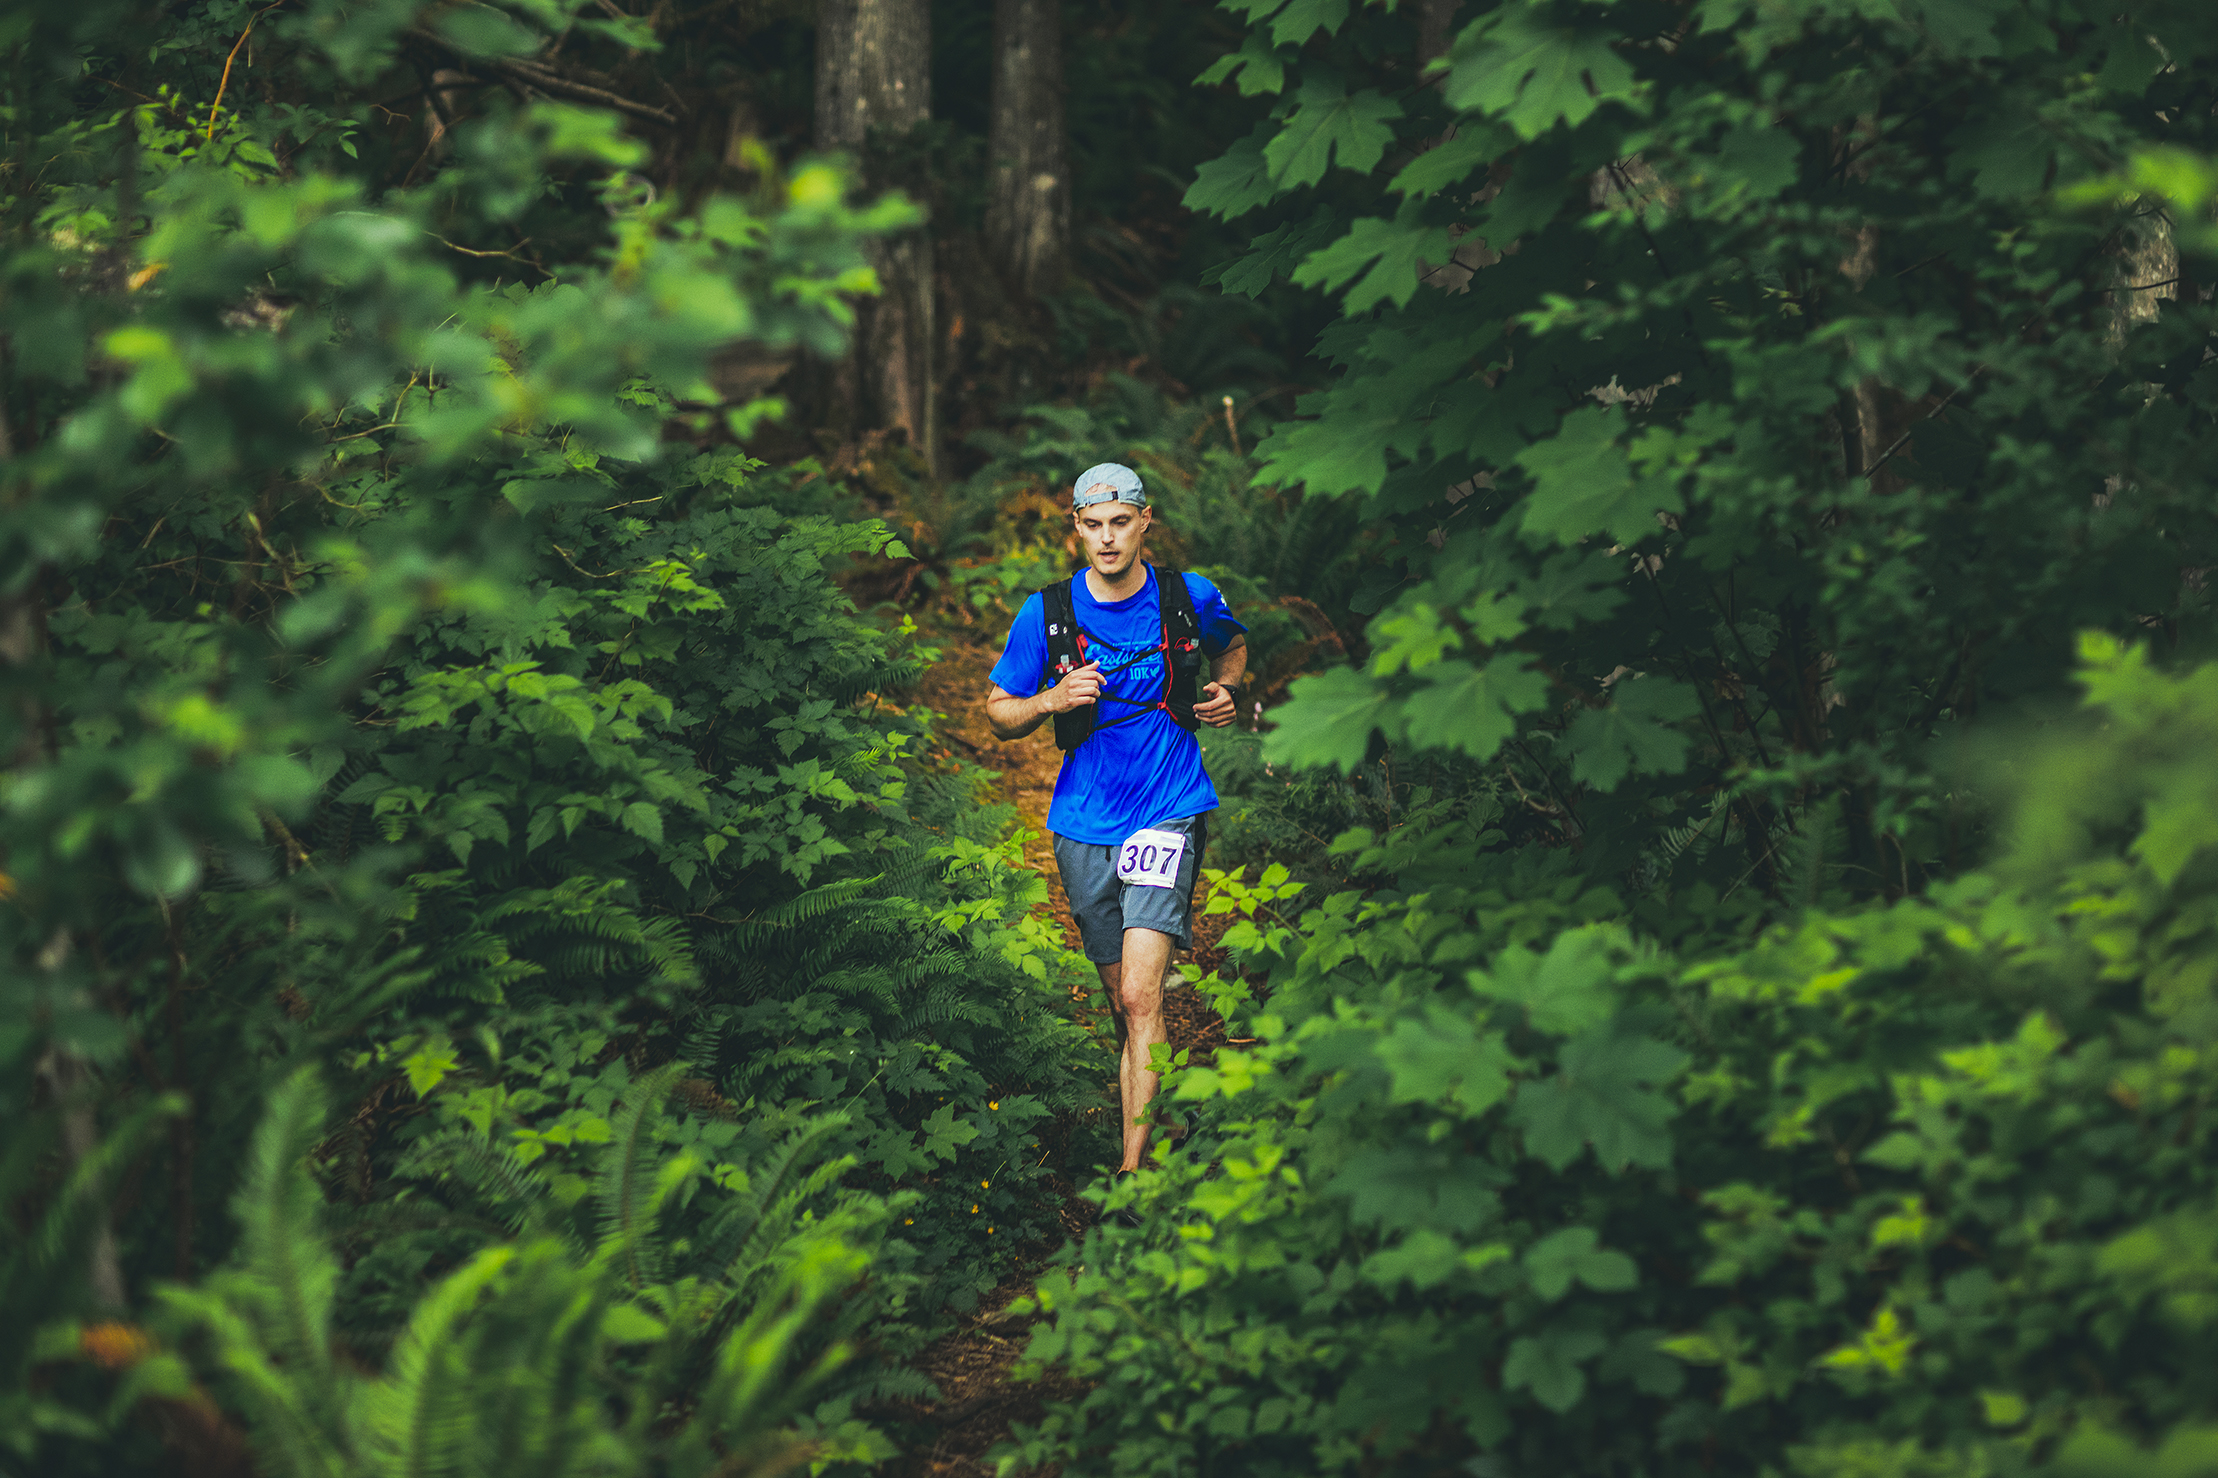 Fraser Valley Trail Races - Bear Mountain - IMG_2135 by Brice Ferre Studio - Vancouver Portrait Adventure and Athlete Photographer.jpg